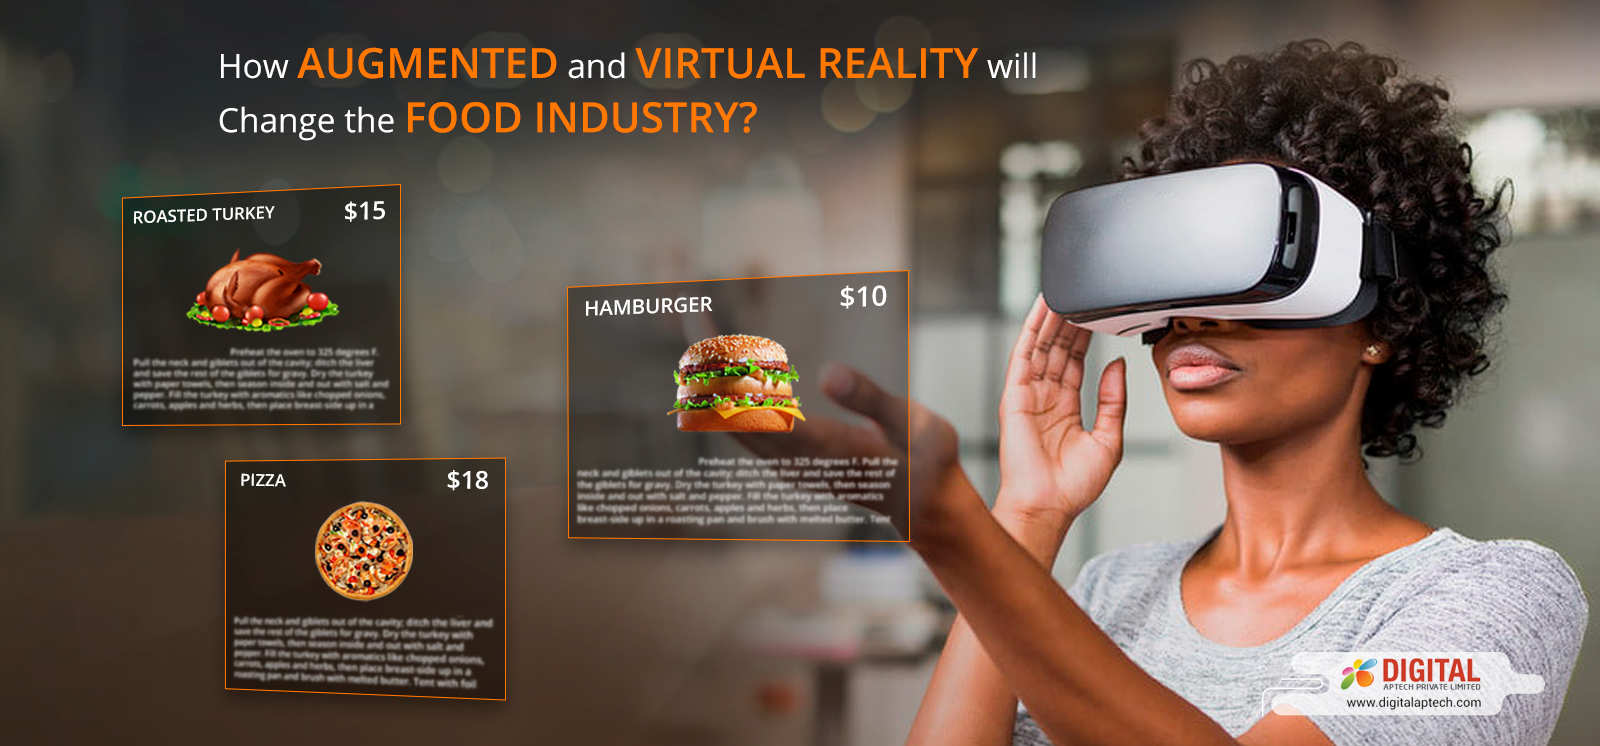 How Augmented and Virtual Reality is Changing the Food Industry?